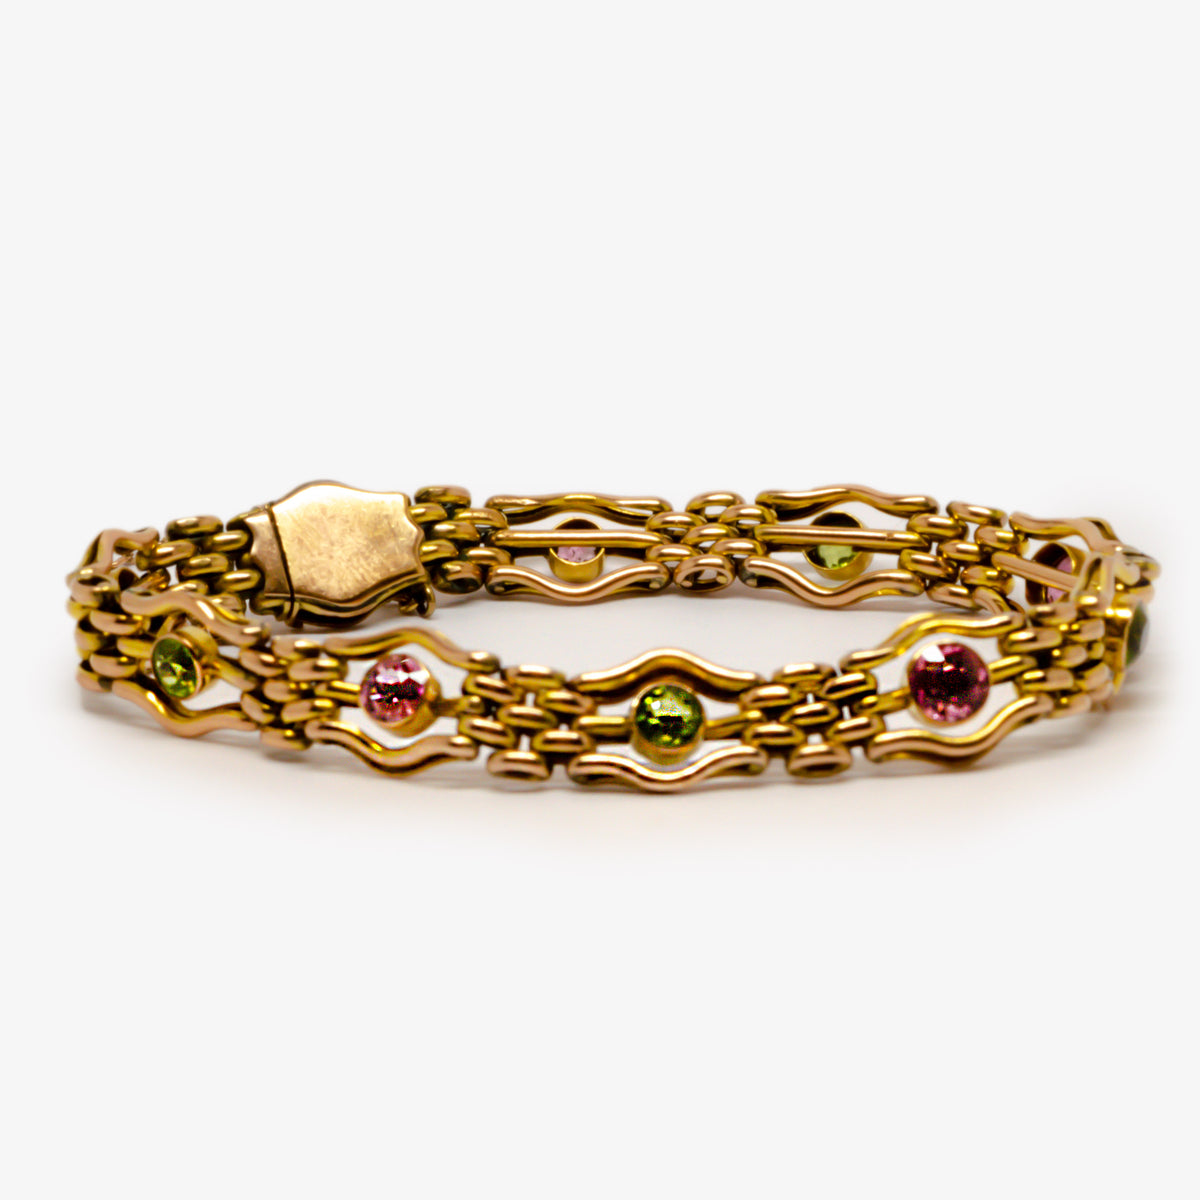 Antique Peridot & Tourmaline Bracelet